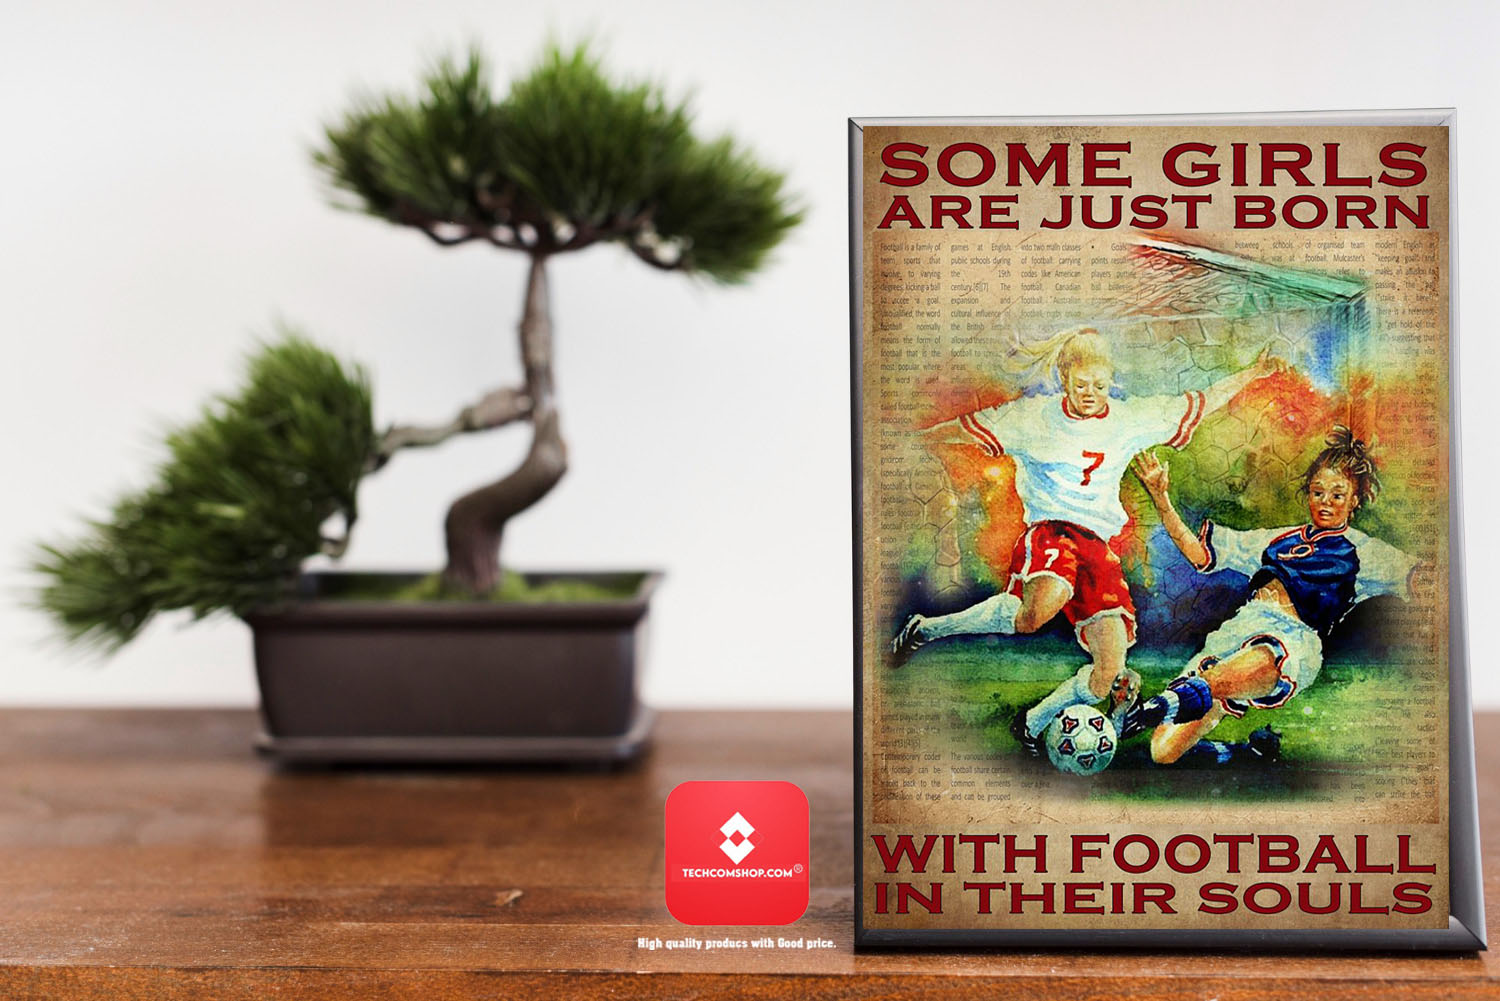 Some girls are just born with football in their souls poster 7